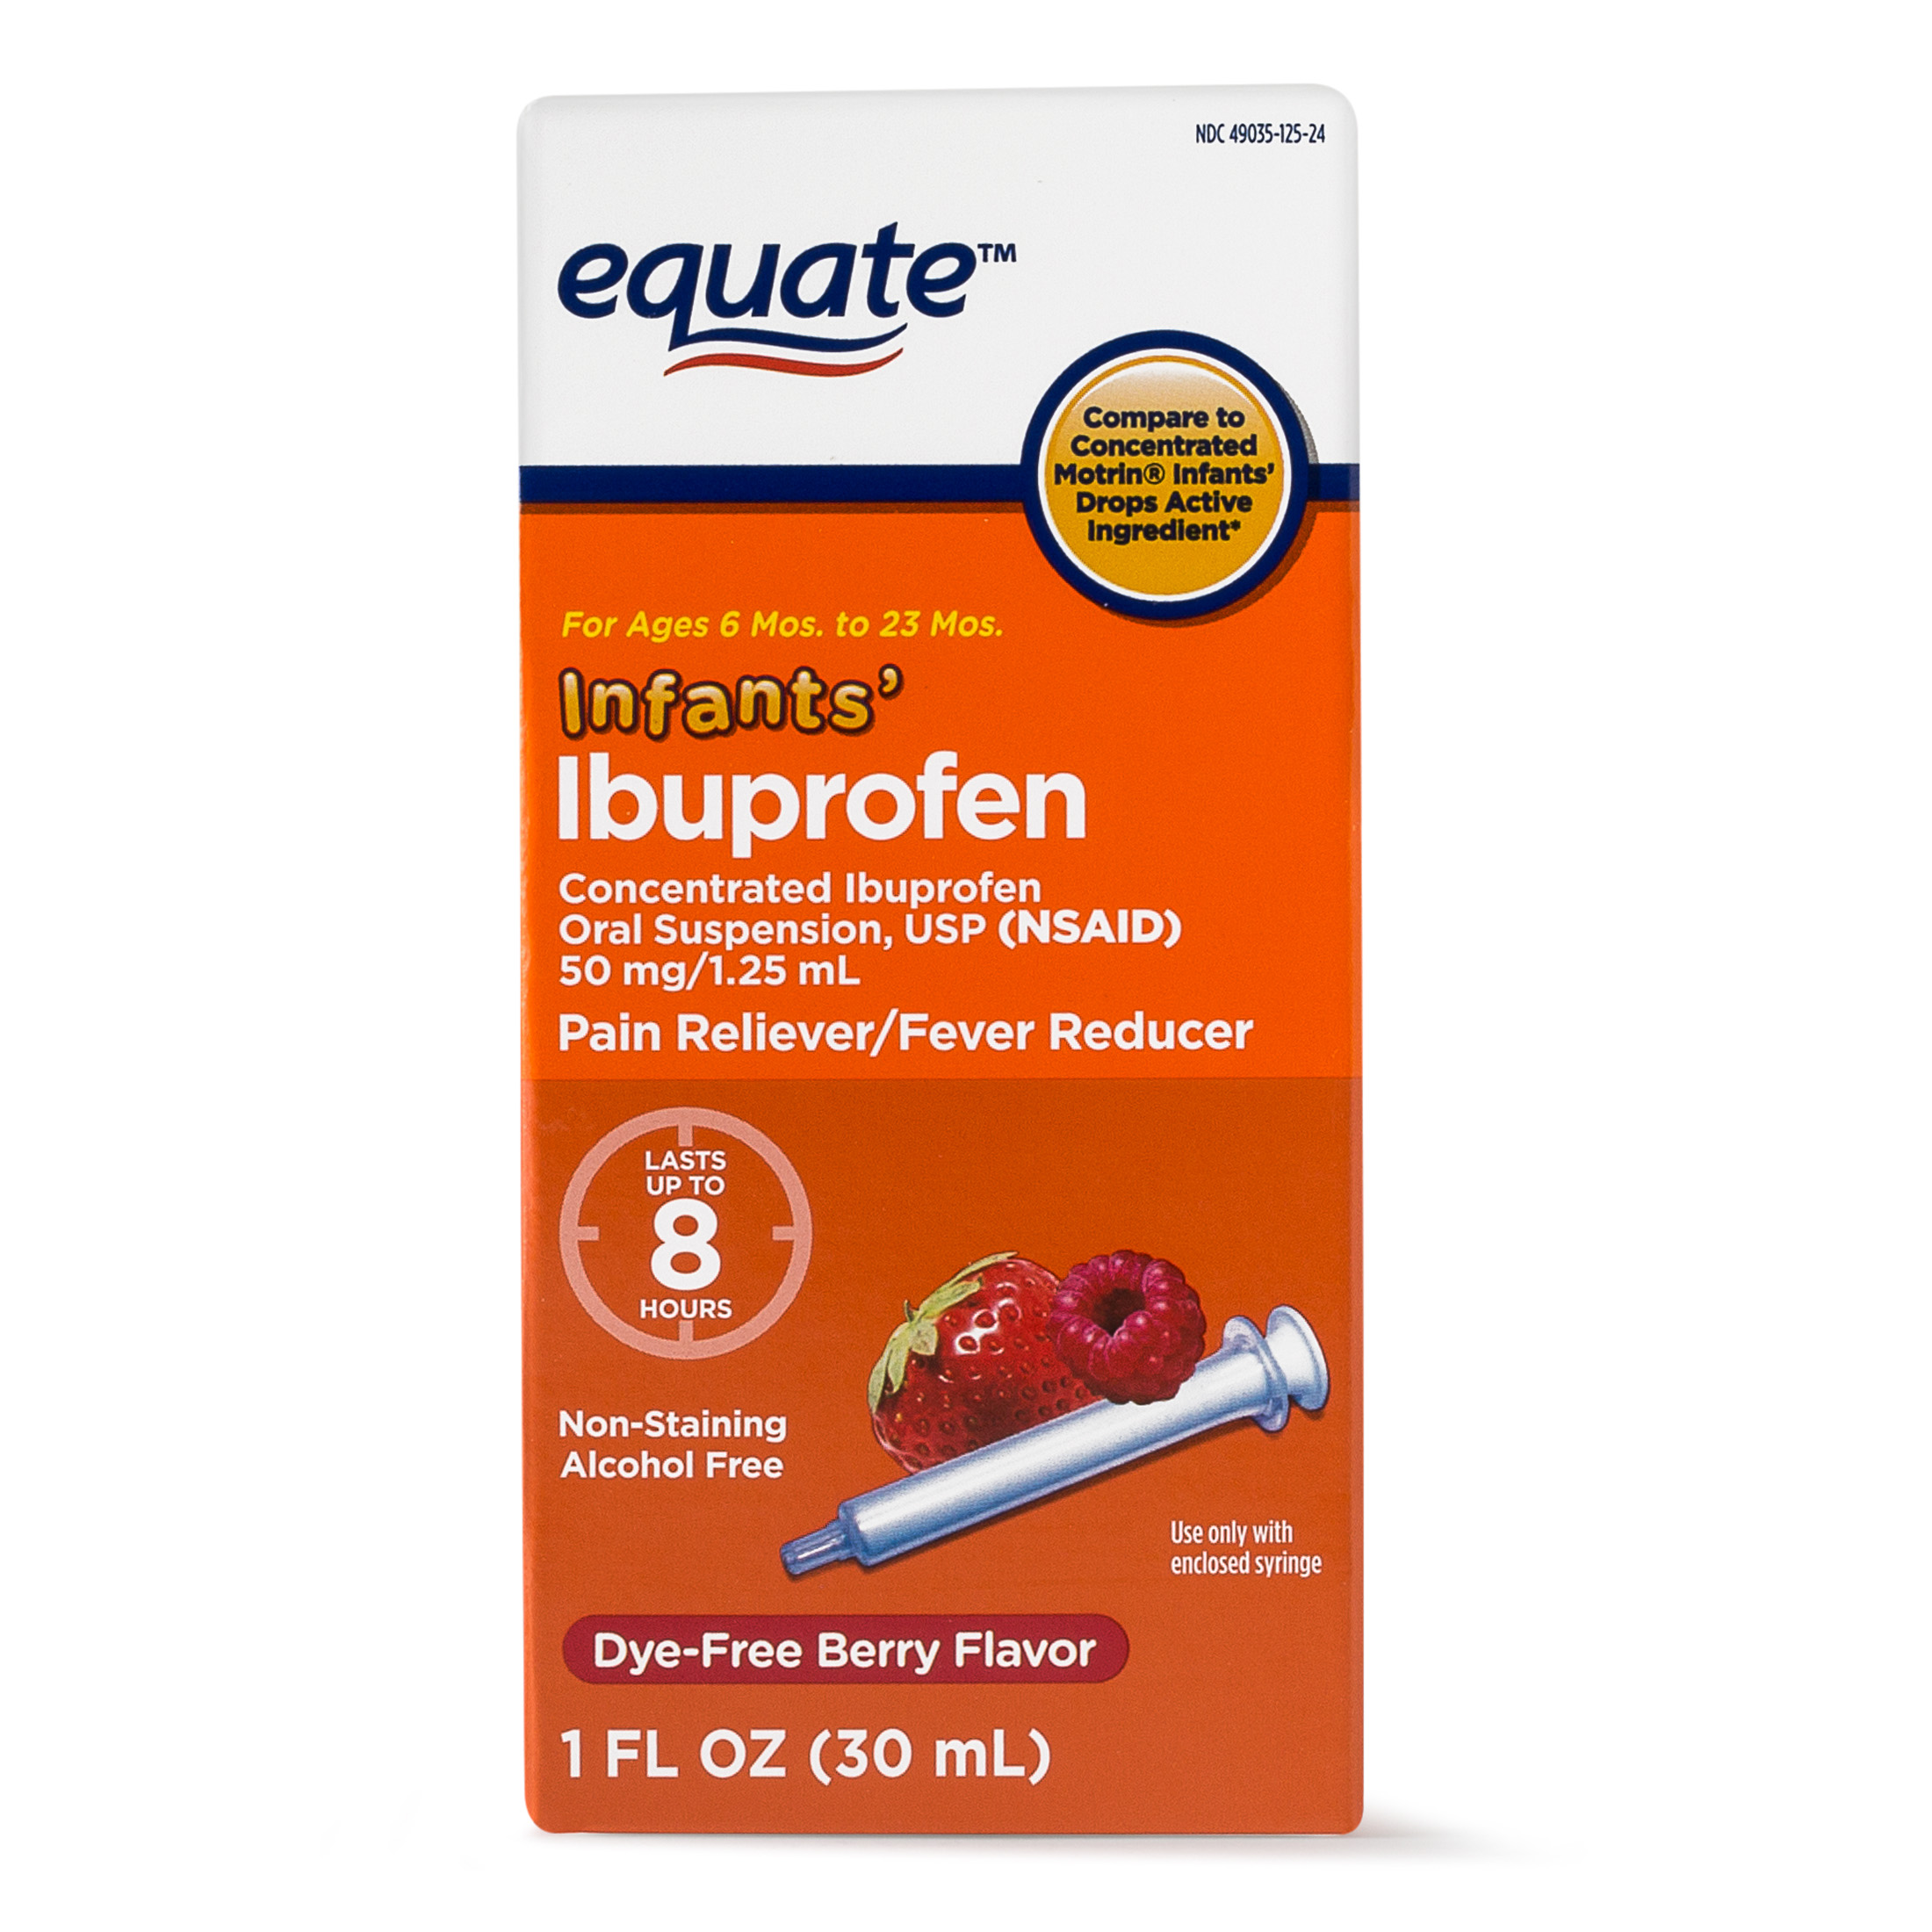 Equate Infants Concentrated Ibuprofen Berry Suspension, 50 mg, 1 Oz